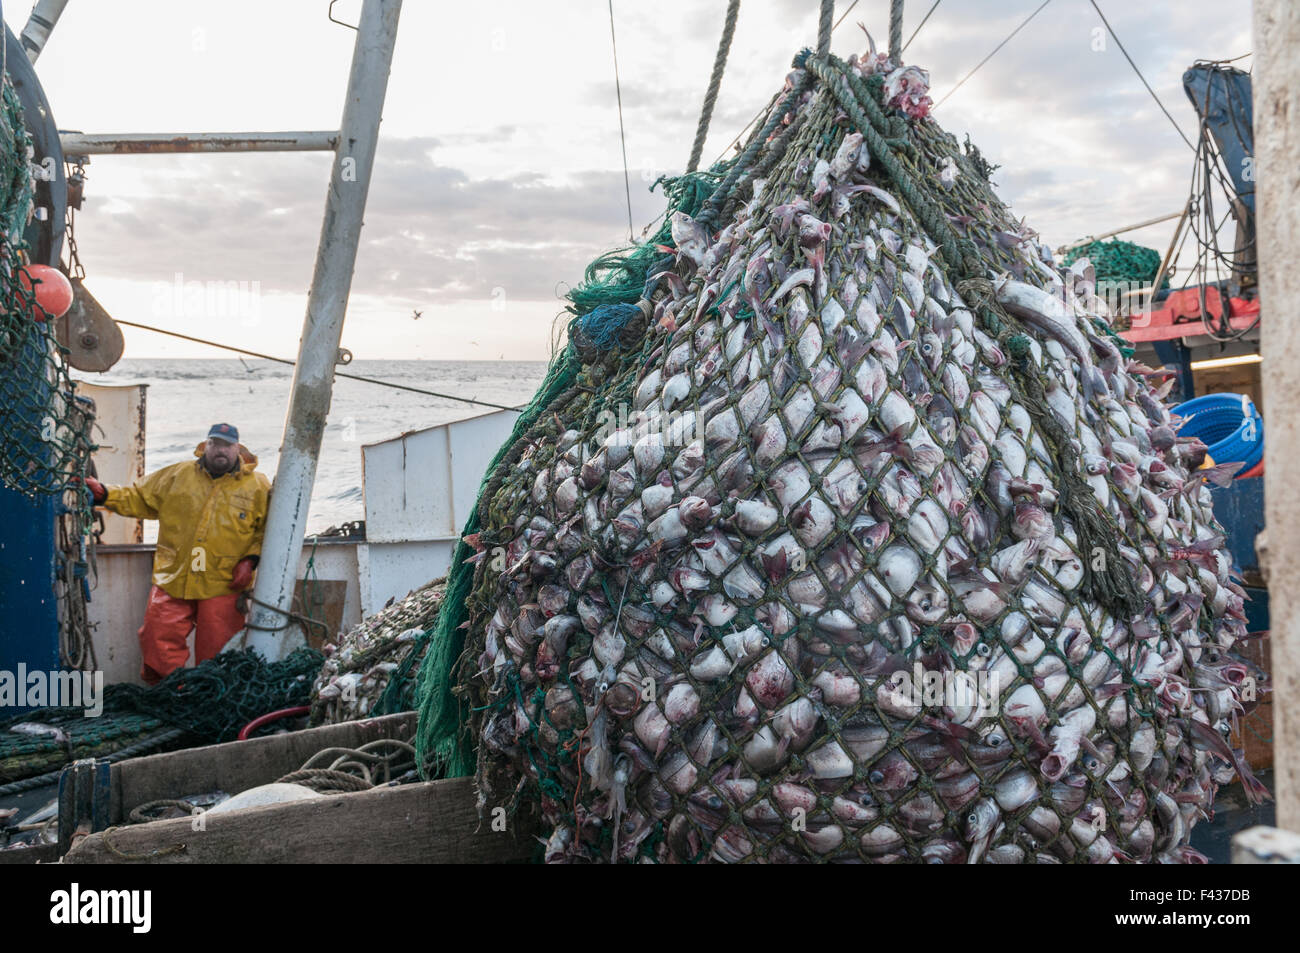 Cod end of fishing trawler net full of haddock georges for Mass commercial fishing